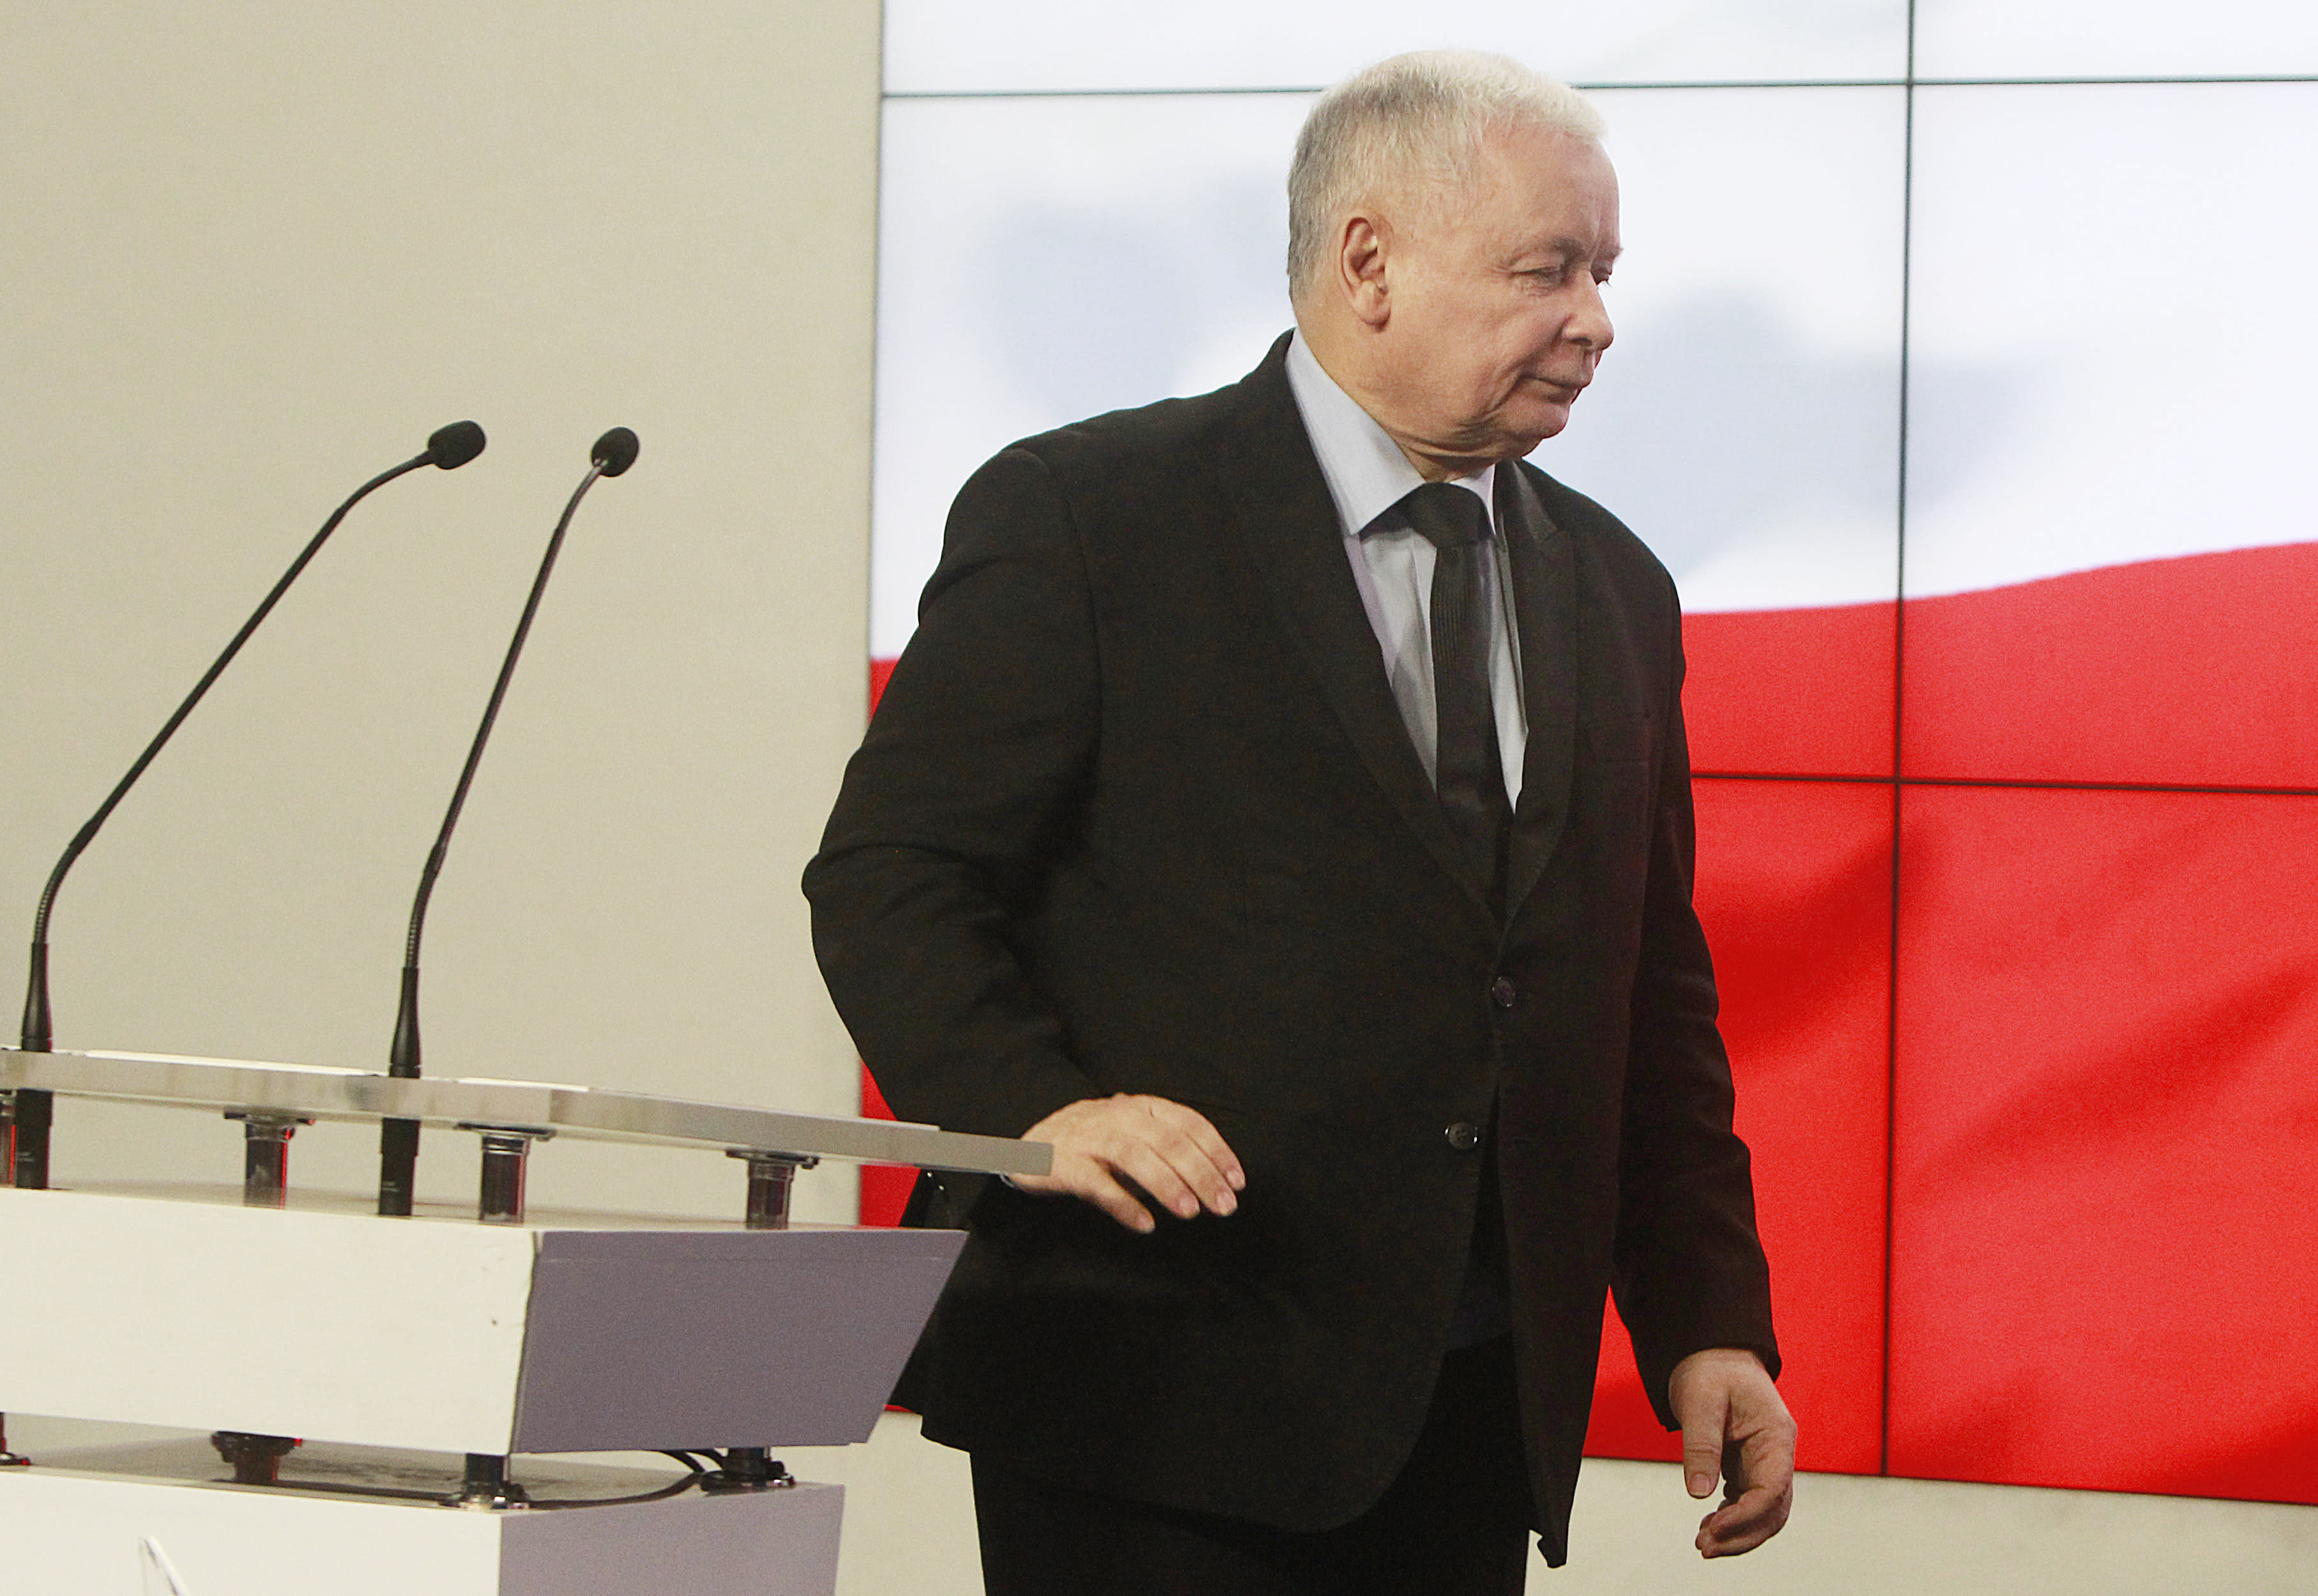 f6d8774e68de FILE - In this March 13, 2017 file photo, Jaroslaw Kaczynski, the leader